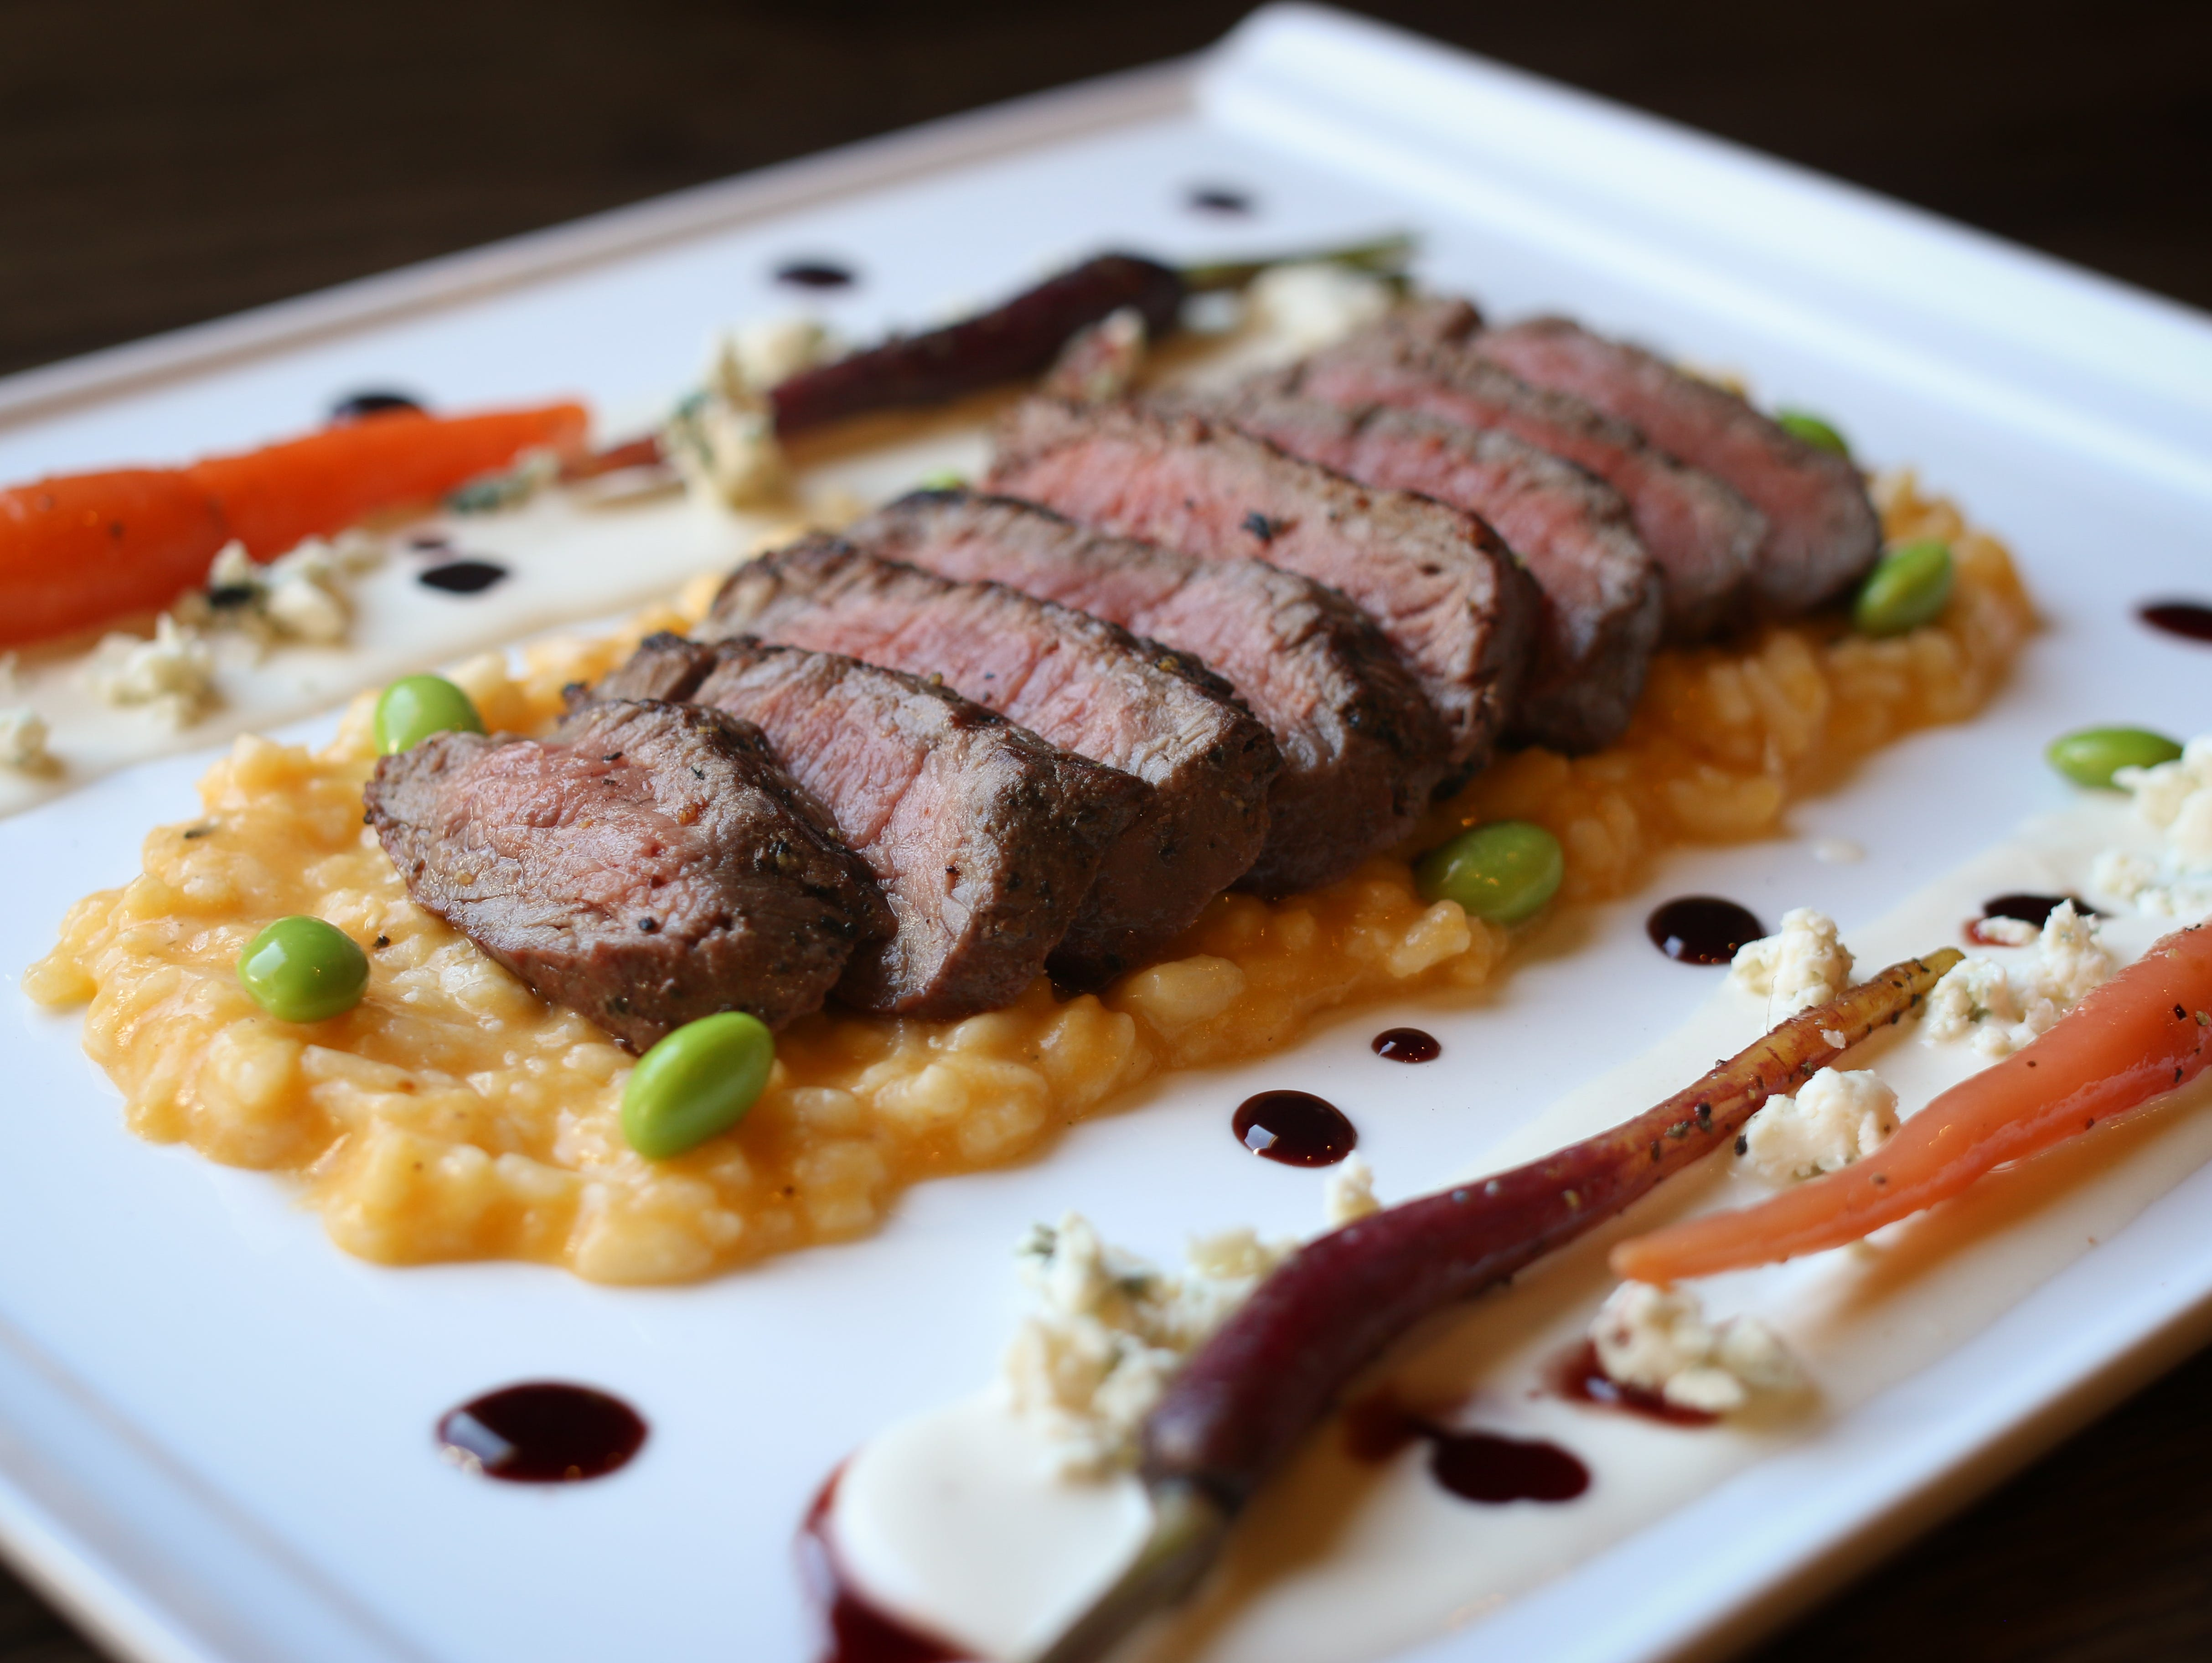 Enjoy Spring Arizona Restaurant Week from May 19th - 28th! Entertainment and great food, what more do you need!